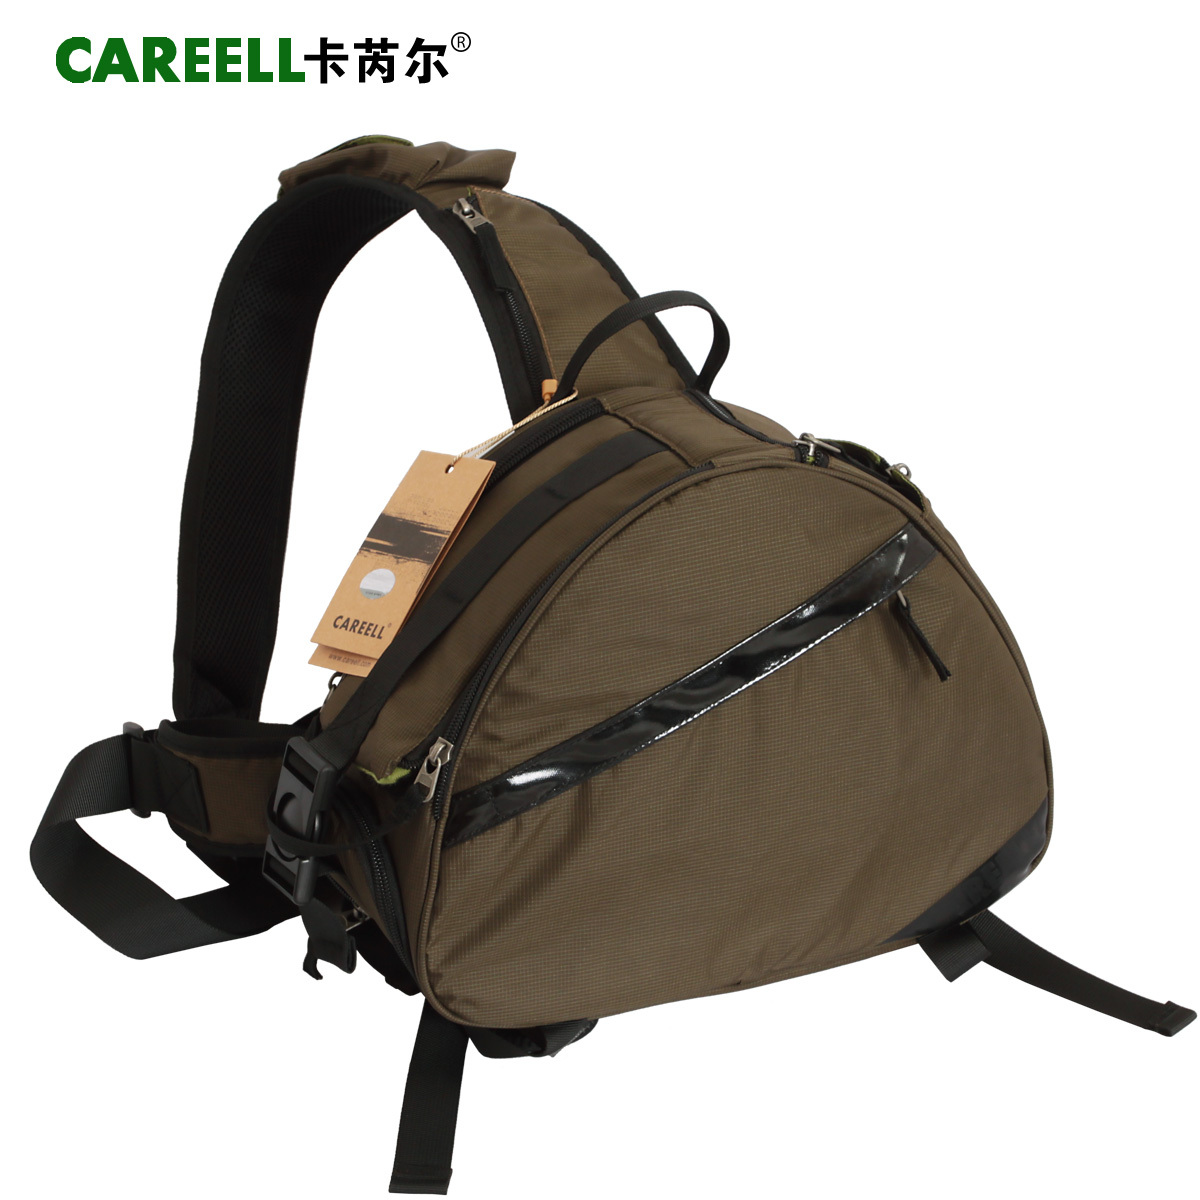 CAREELL C2033   Camera  Bag  One Shoulder Backpack Inclined Across Shoulders Waterproof Backpack For Camera Video Photo Bag шабалов д метро 2033 право на жизнь